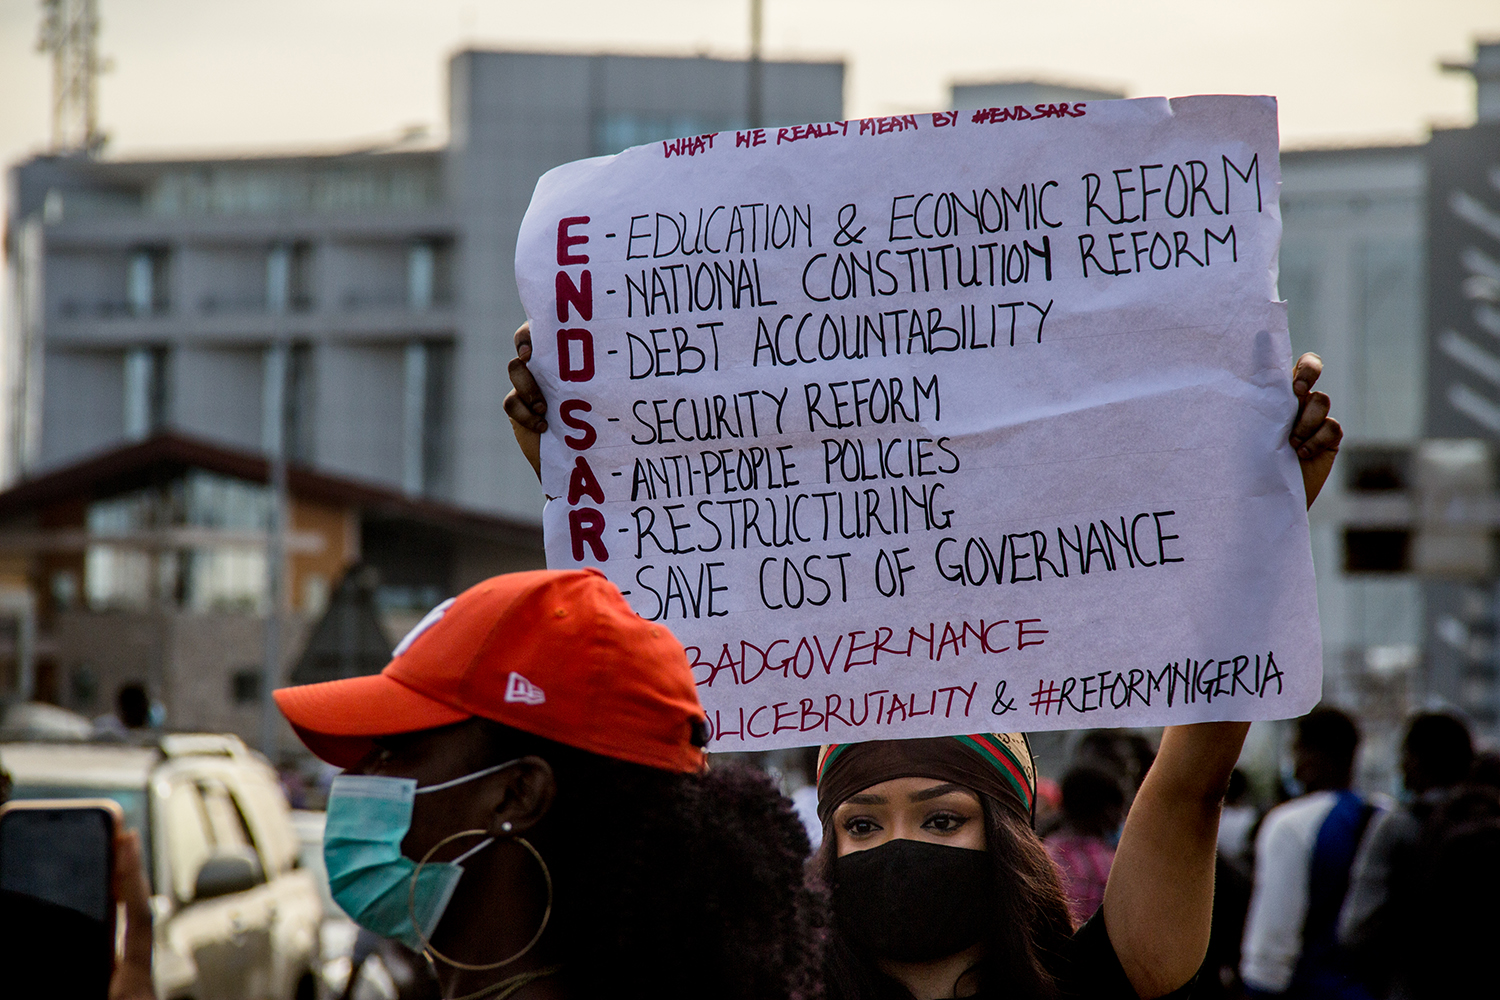 A woman holds a sign during a protest at the entrance to the Lekki Toll Plaza on Oct. 18.